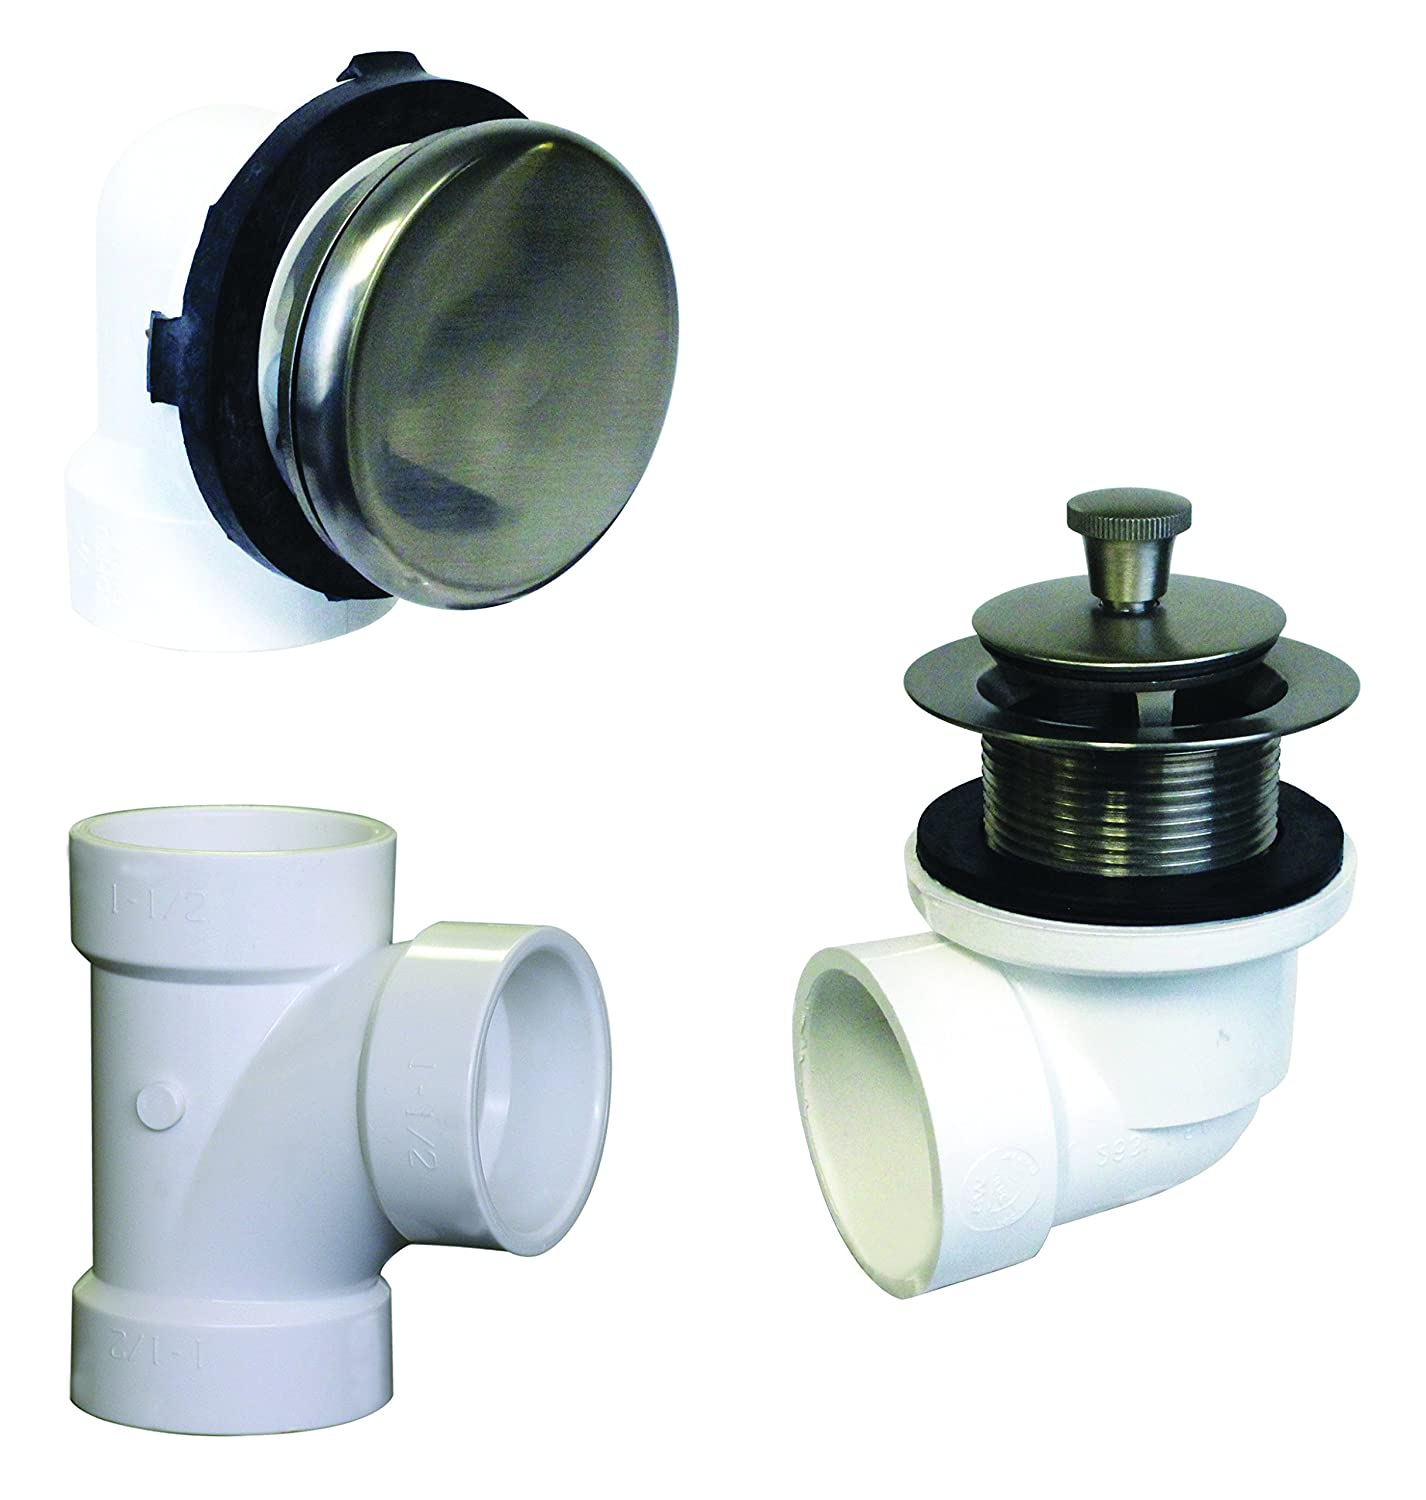 Satin Westbrass D594Prk-12 Illusionary Overflow, Sch. 40 Pvc Plumbers Pack